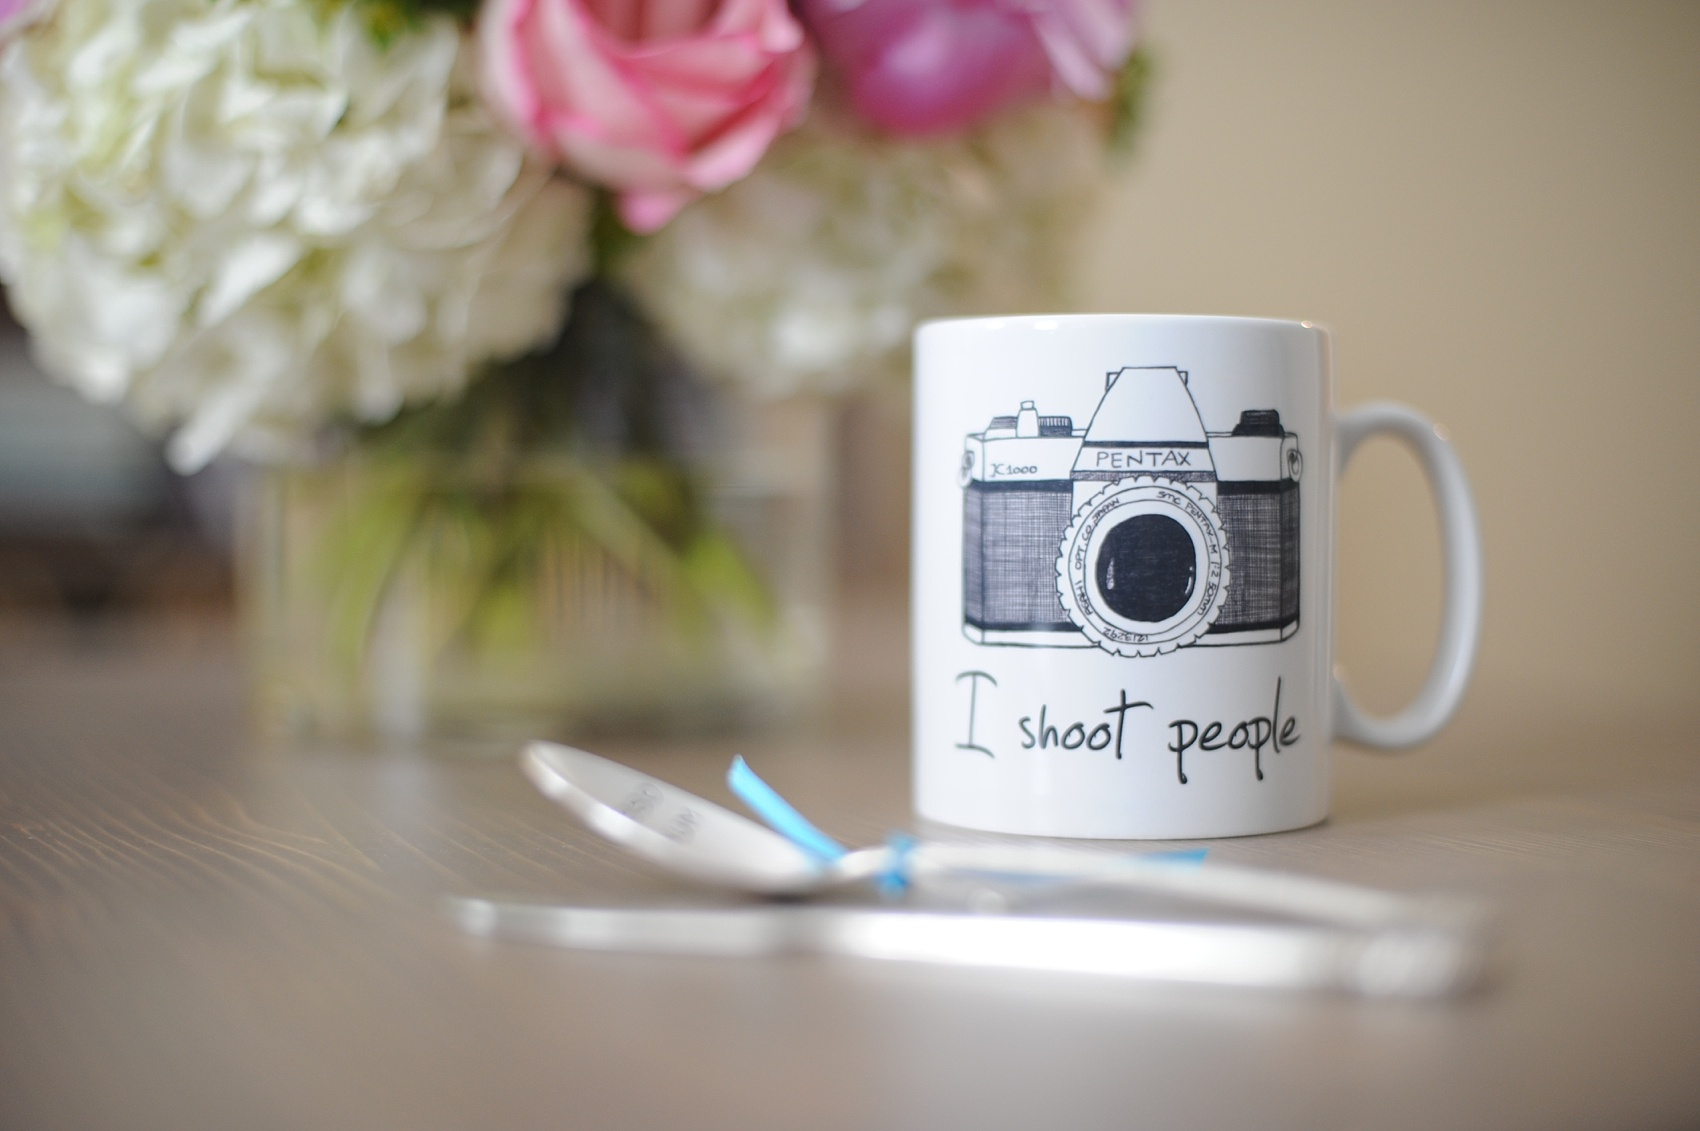 Gifts Photographers Photographer Gifts I Shoot People Mug And Stamped